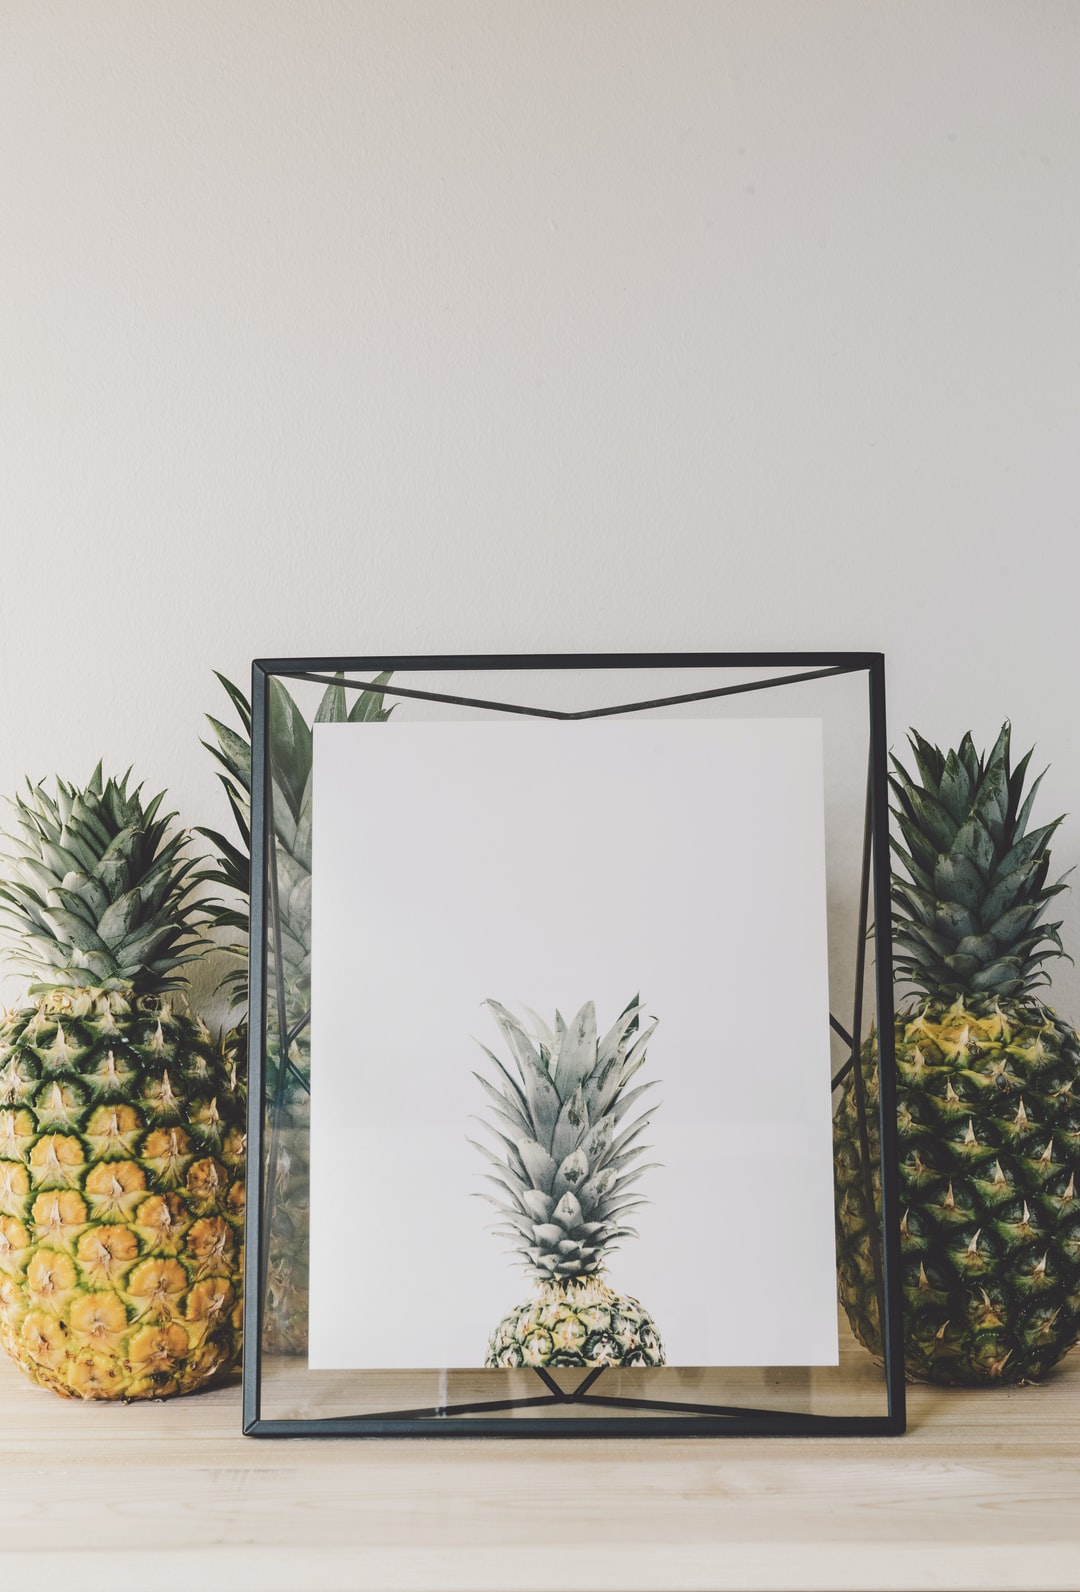 Free pineapple image for download